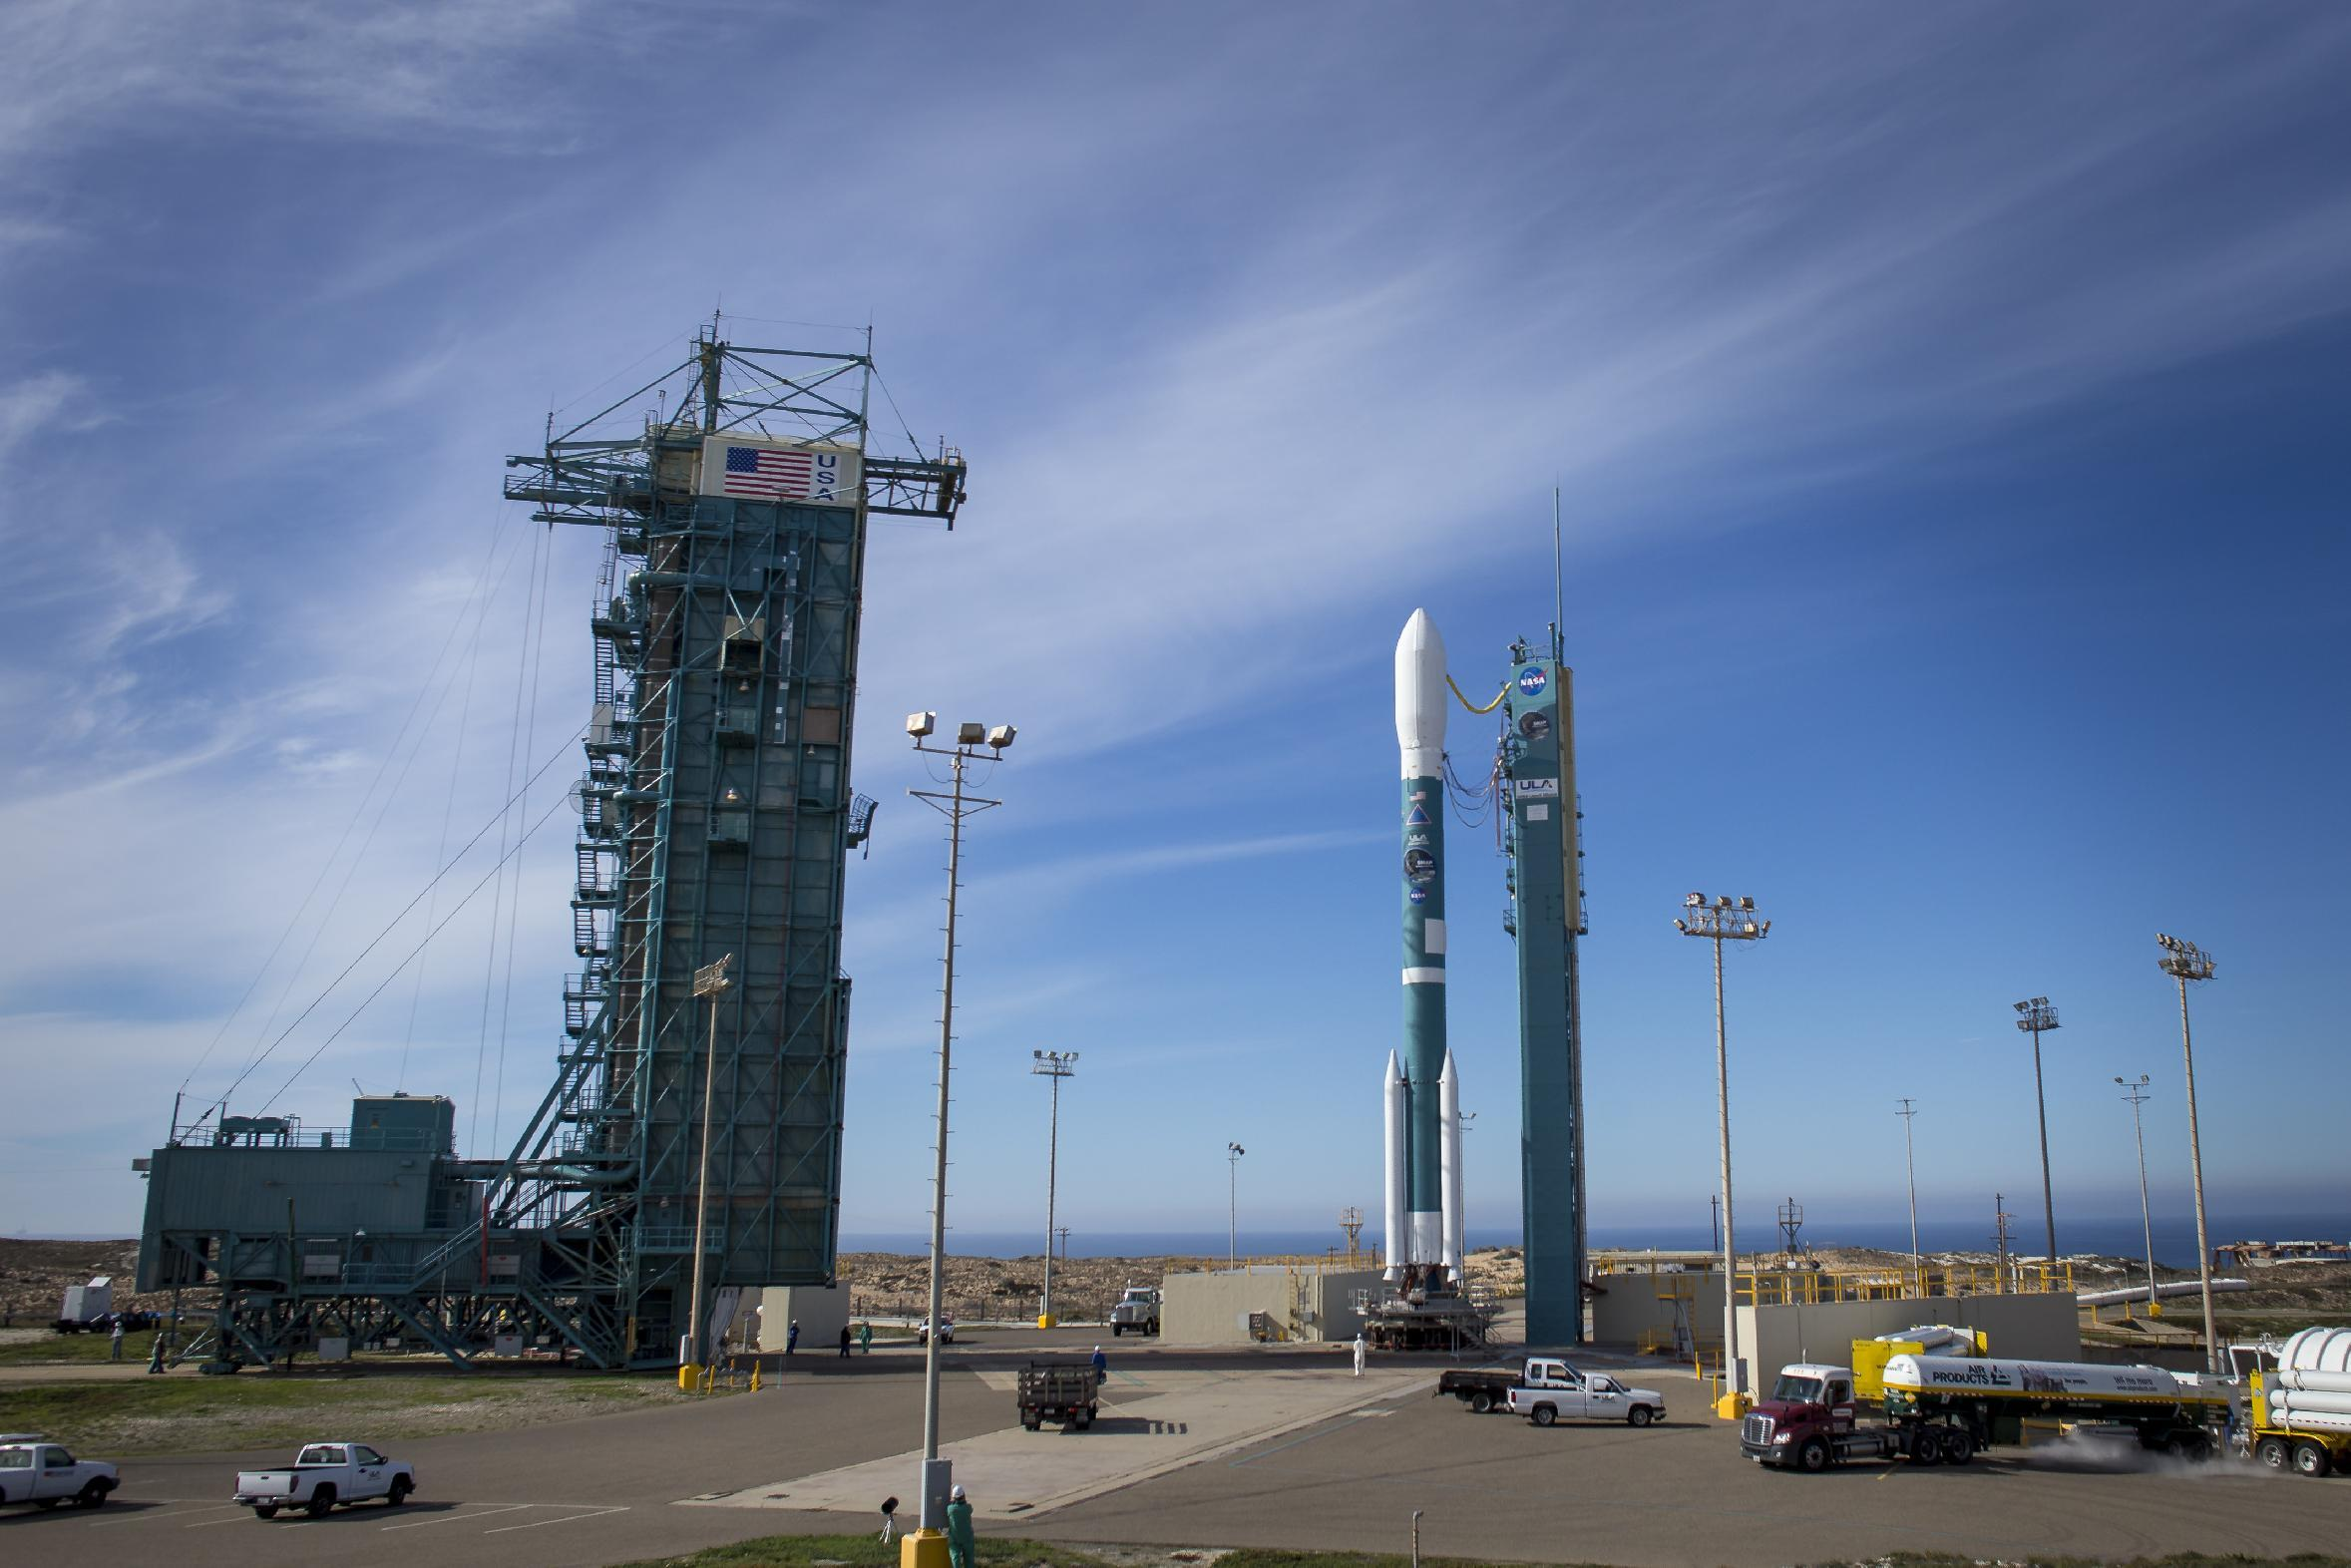 NASA delays soil study satellite launch for 'repairs'